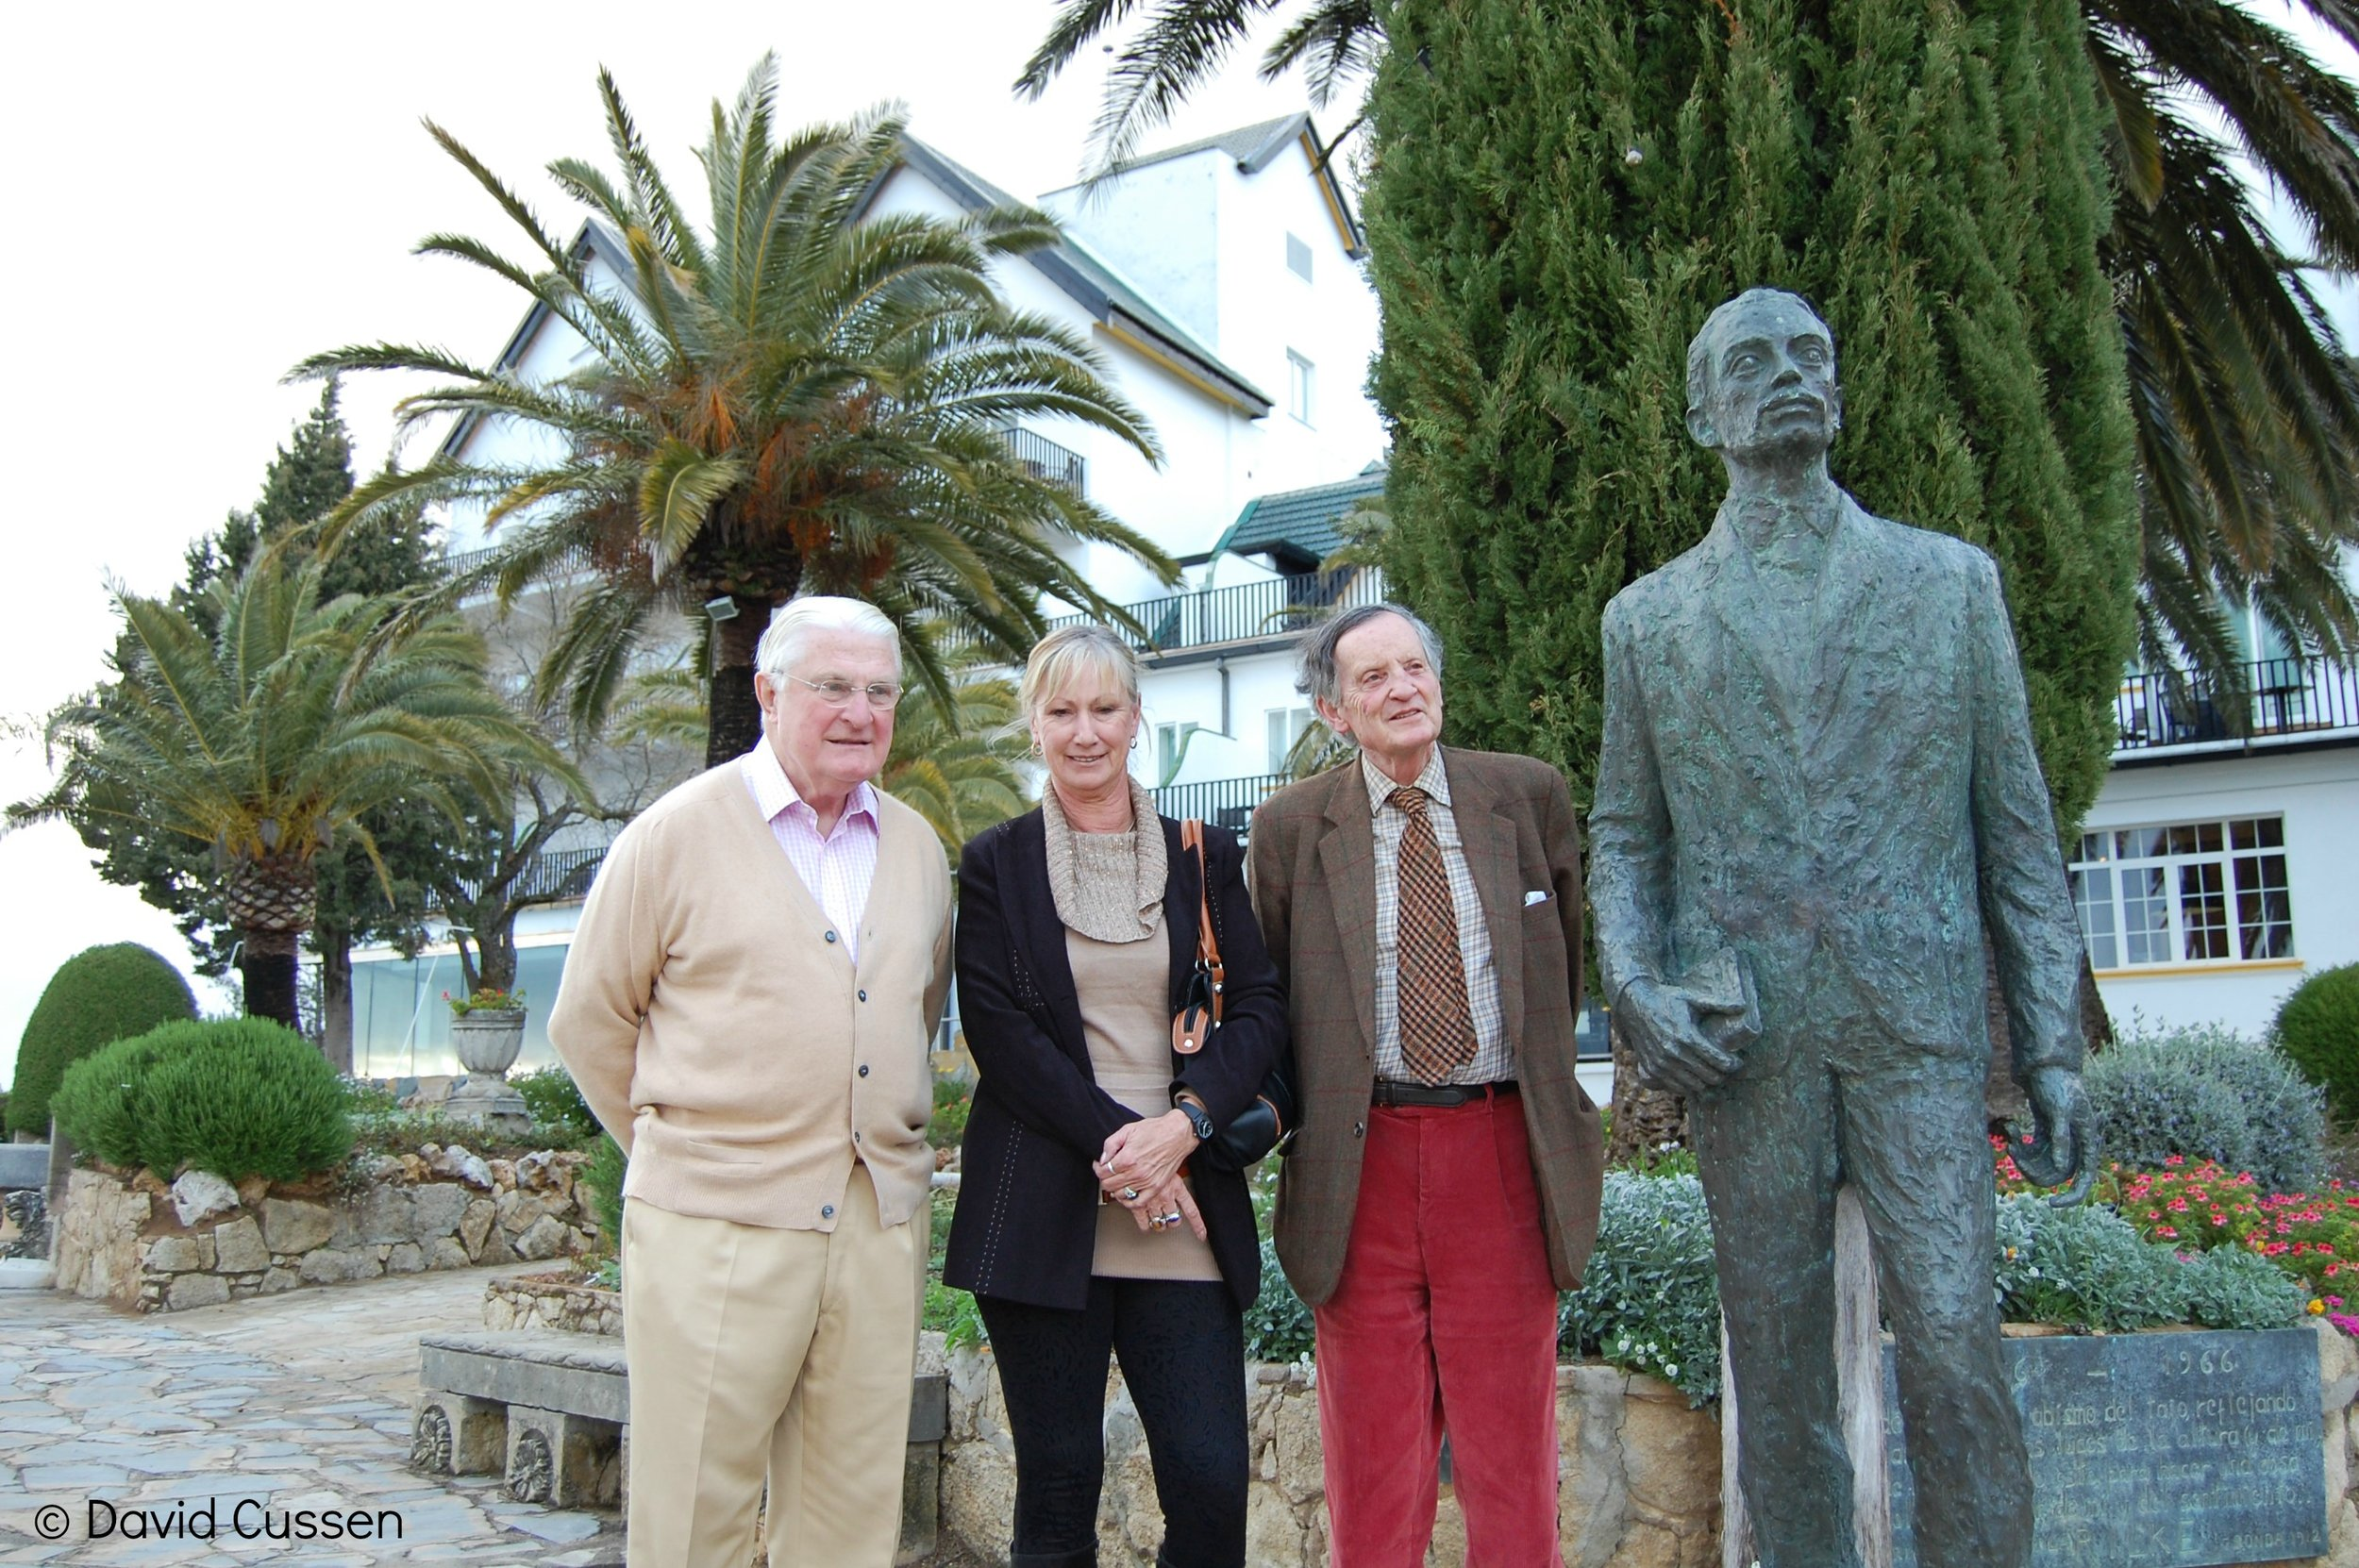 Mr Henderson's Great Grandson - The author with the present Baron Faringdon (left) and Lord Marlesford of Suffolk at the Reina Victoria Hotel in Ronda. The silent chap on the right is the poet Rilke.